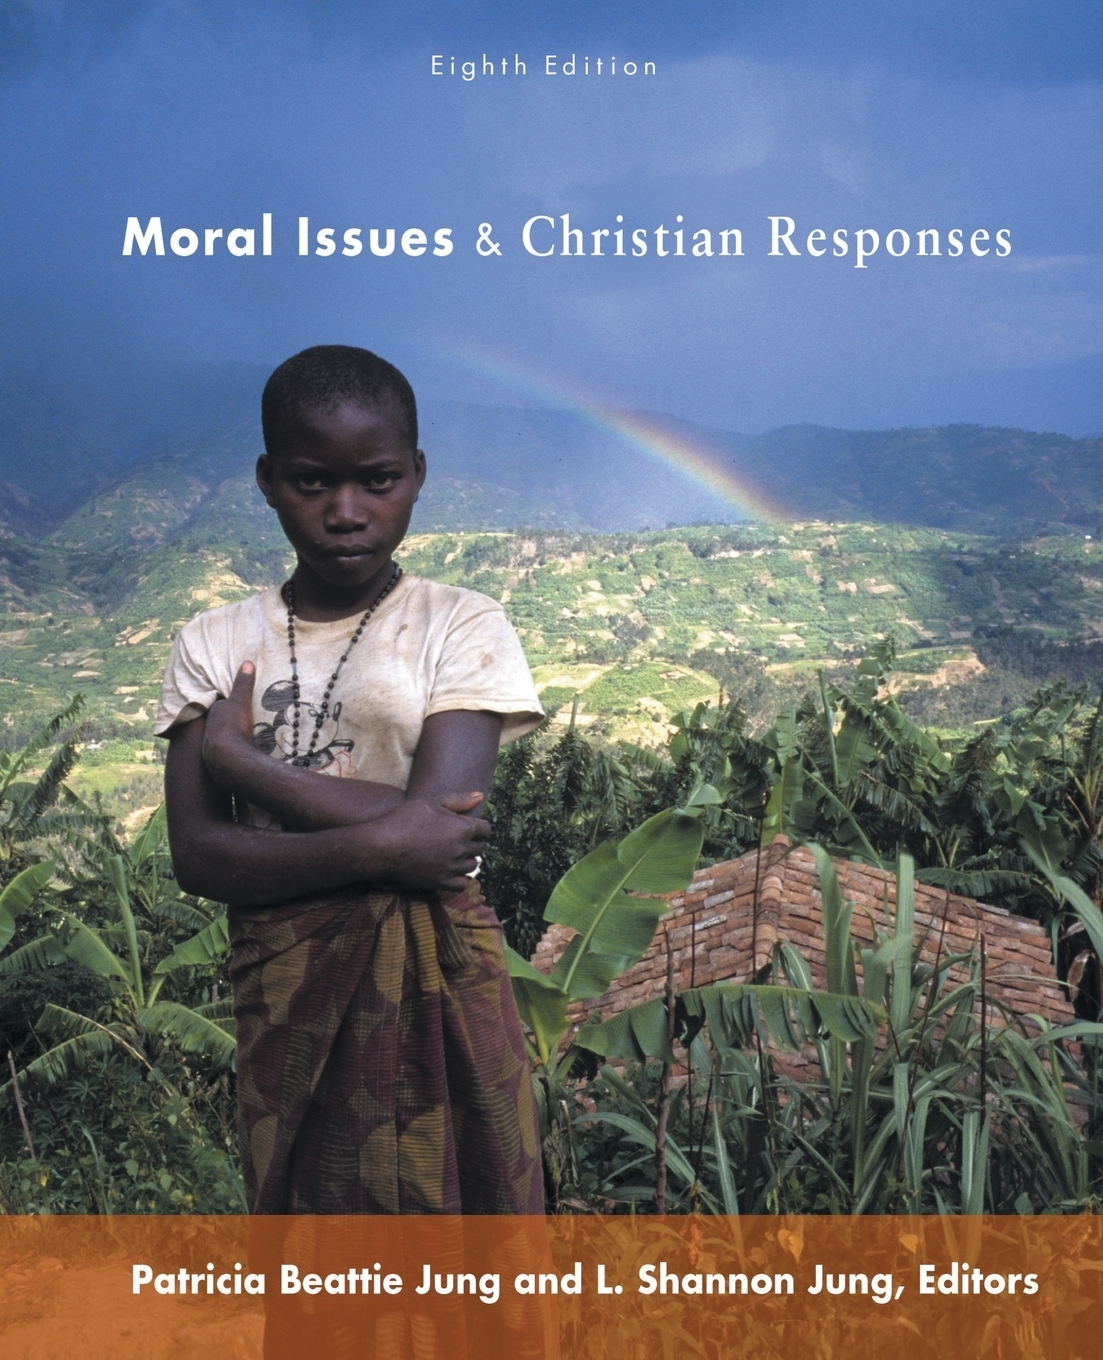 L. Shannon Jung Moral Issues and Christian Responses. Eighth Edition